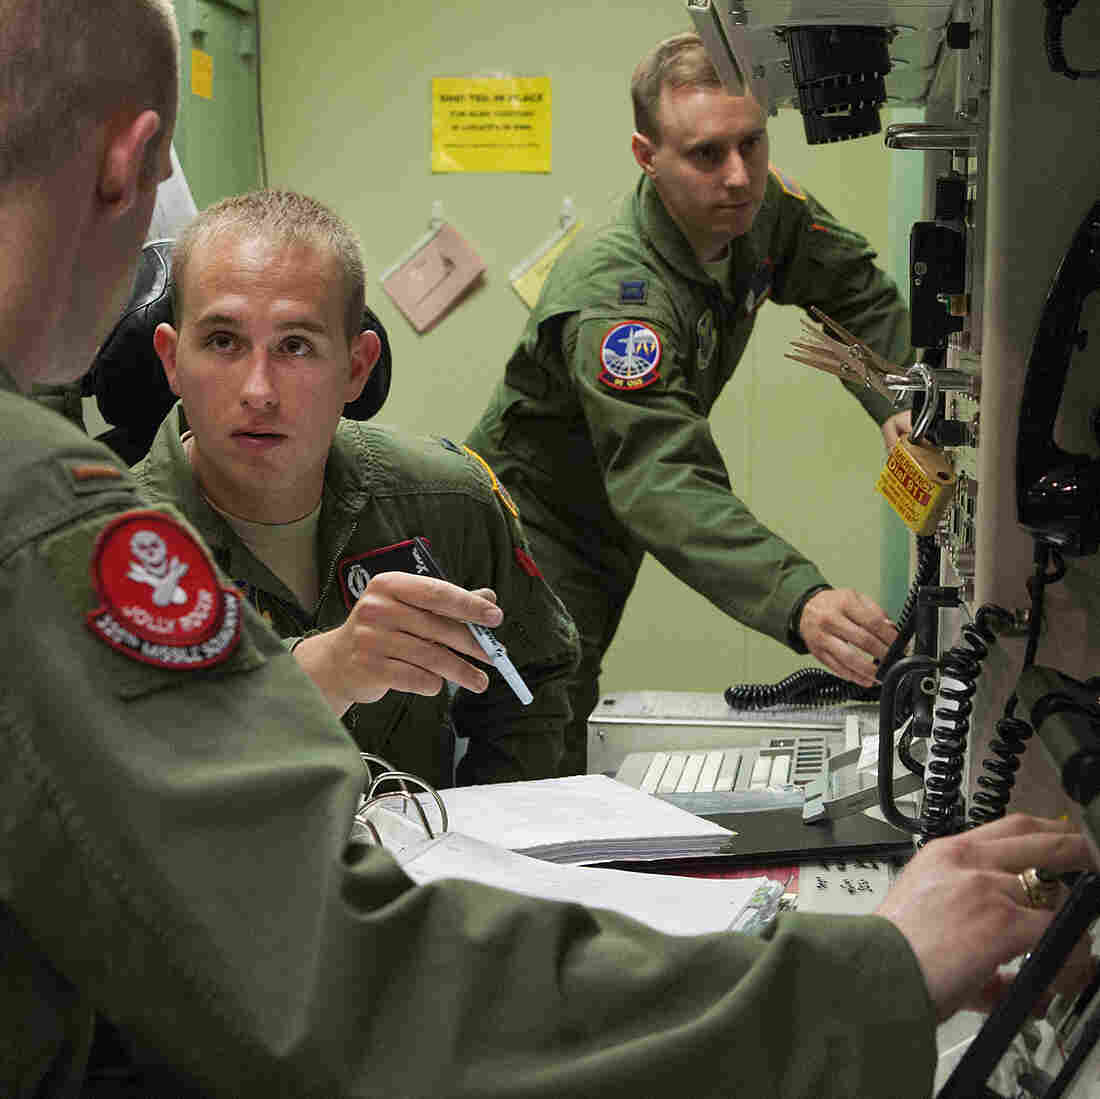 To Stop Cheating, Nuclear Officers Ditch The Grades